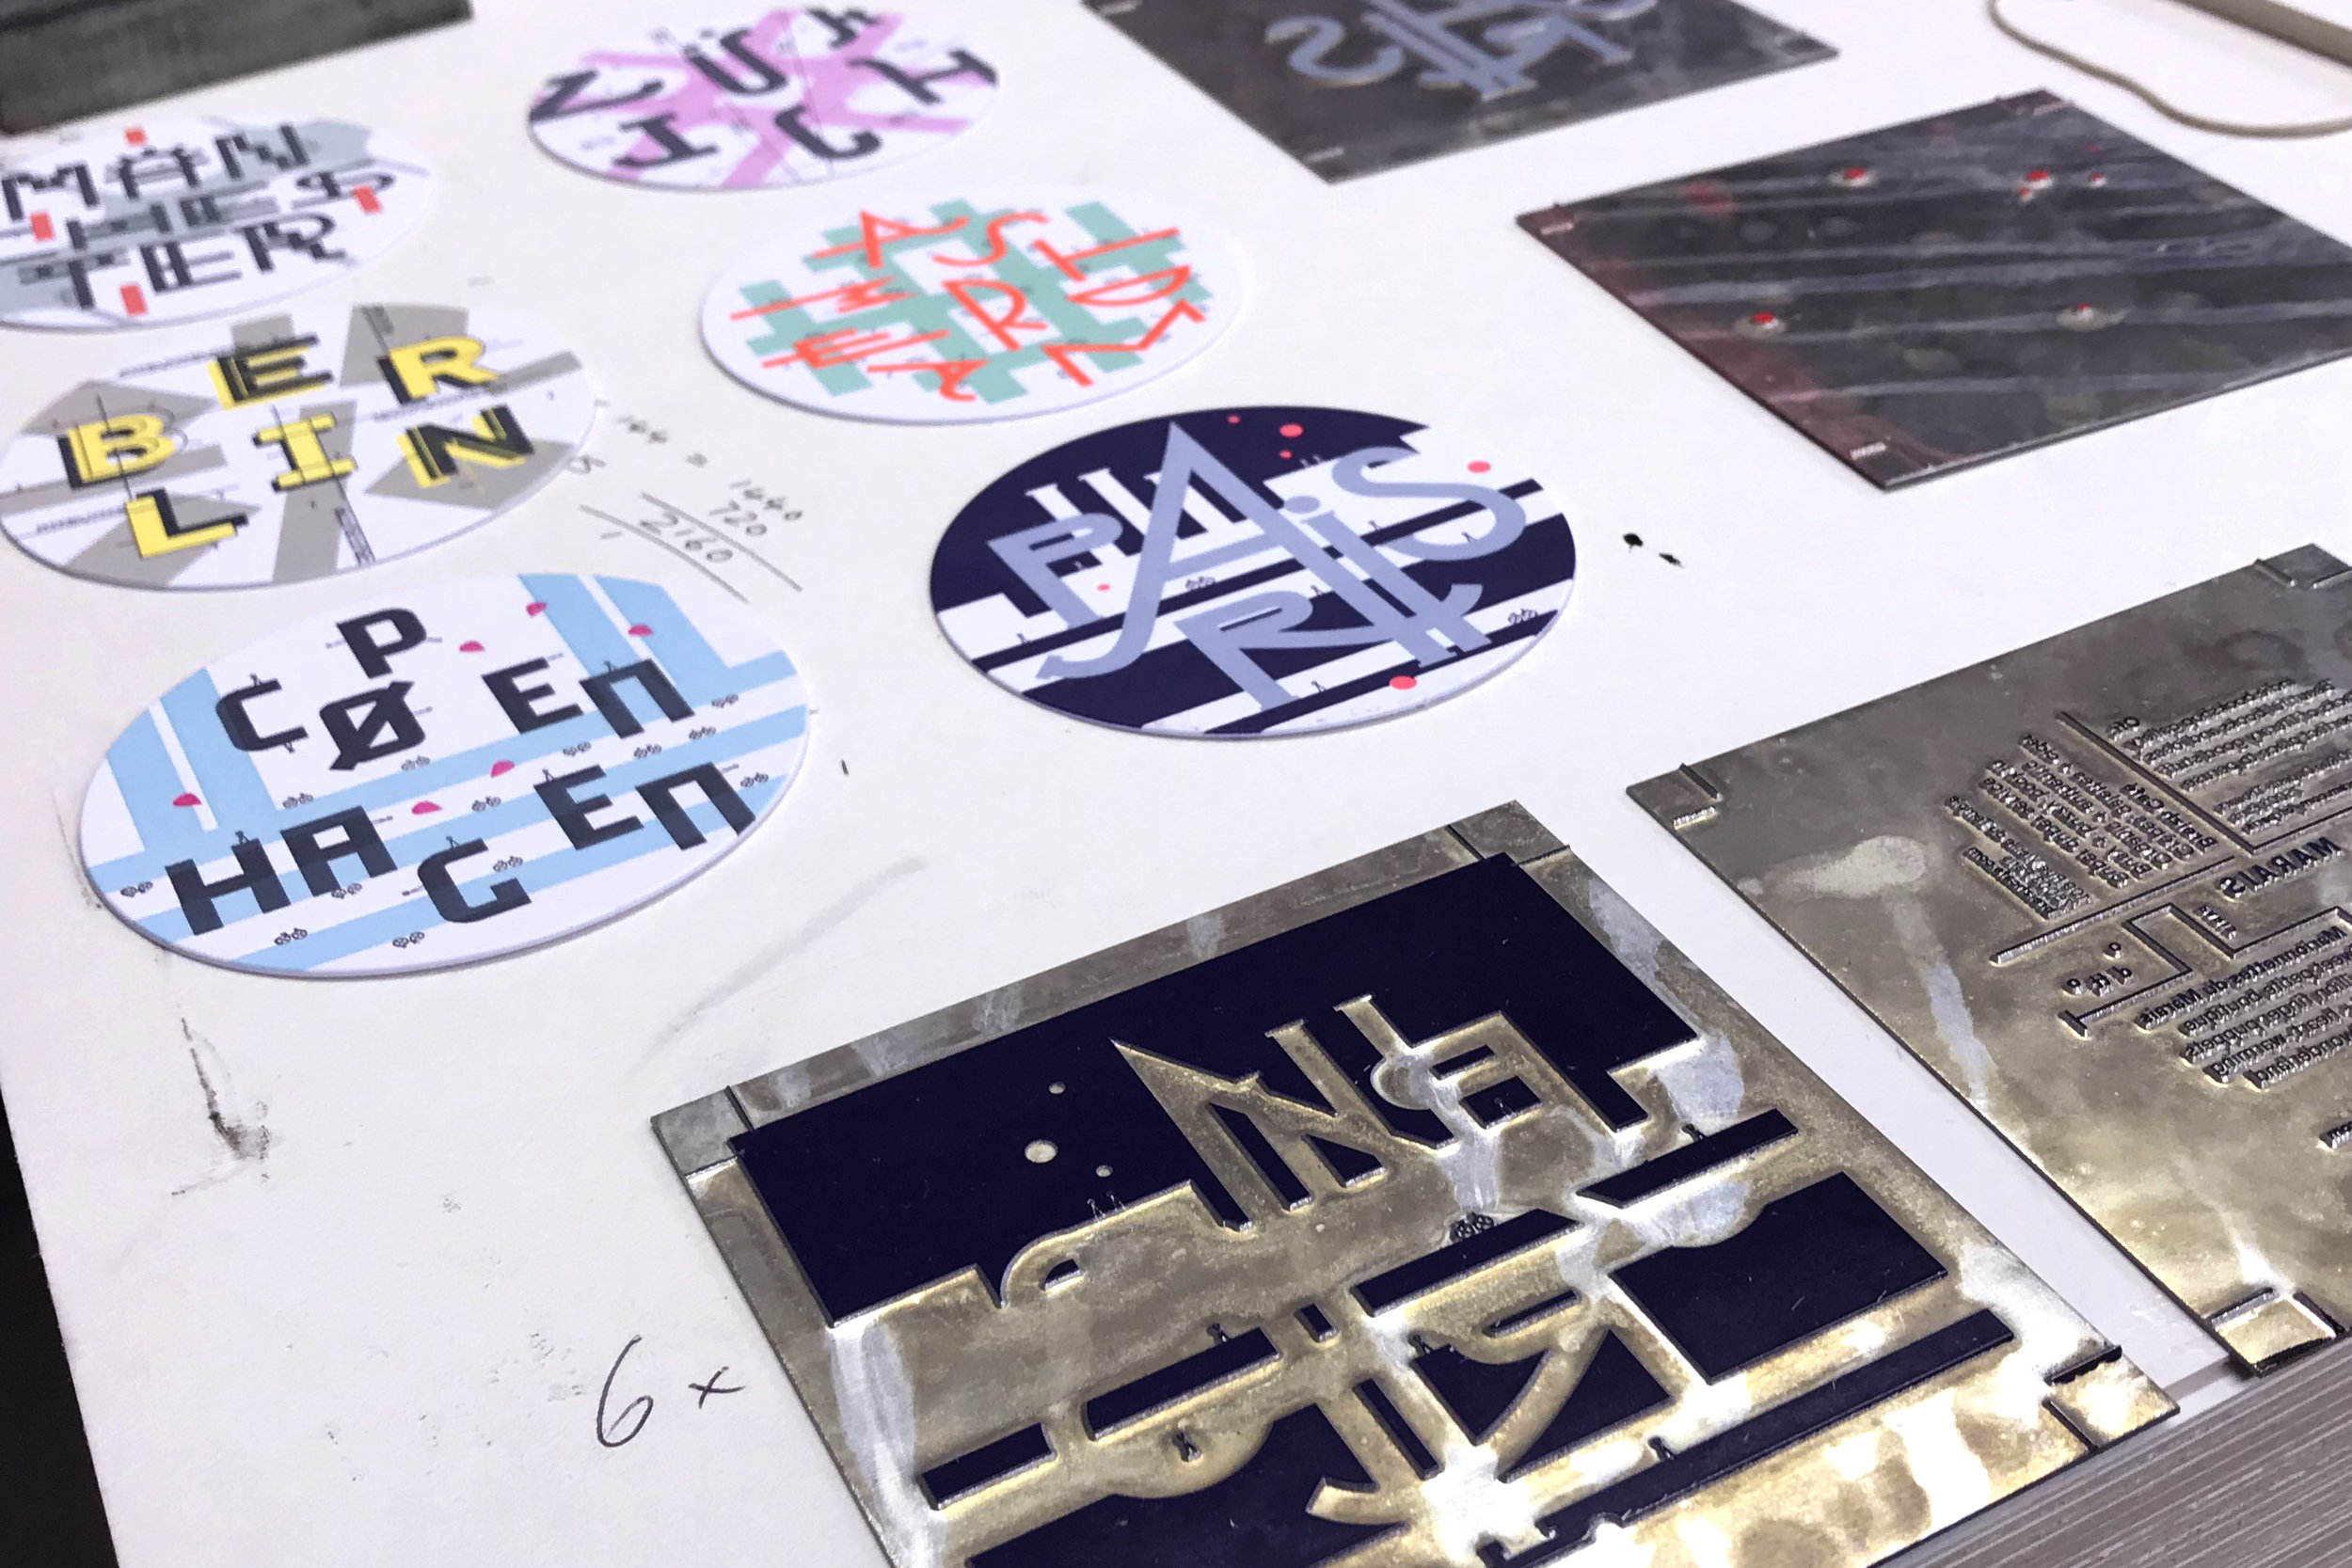 Tiny Guides and printing plates